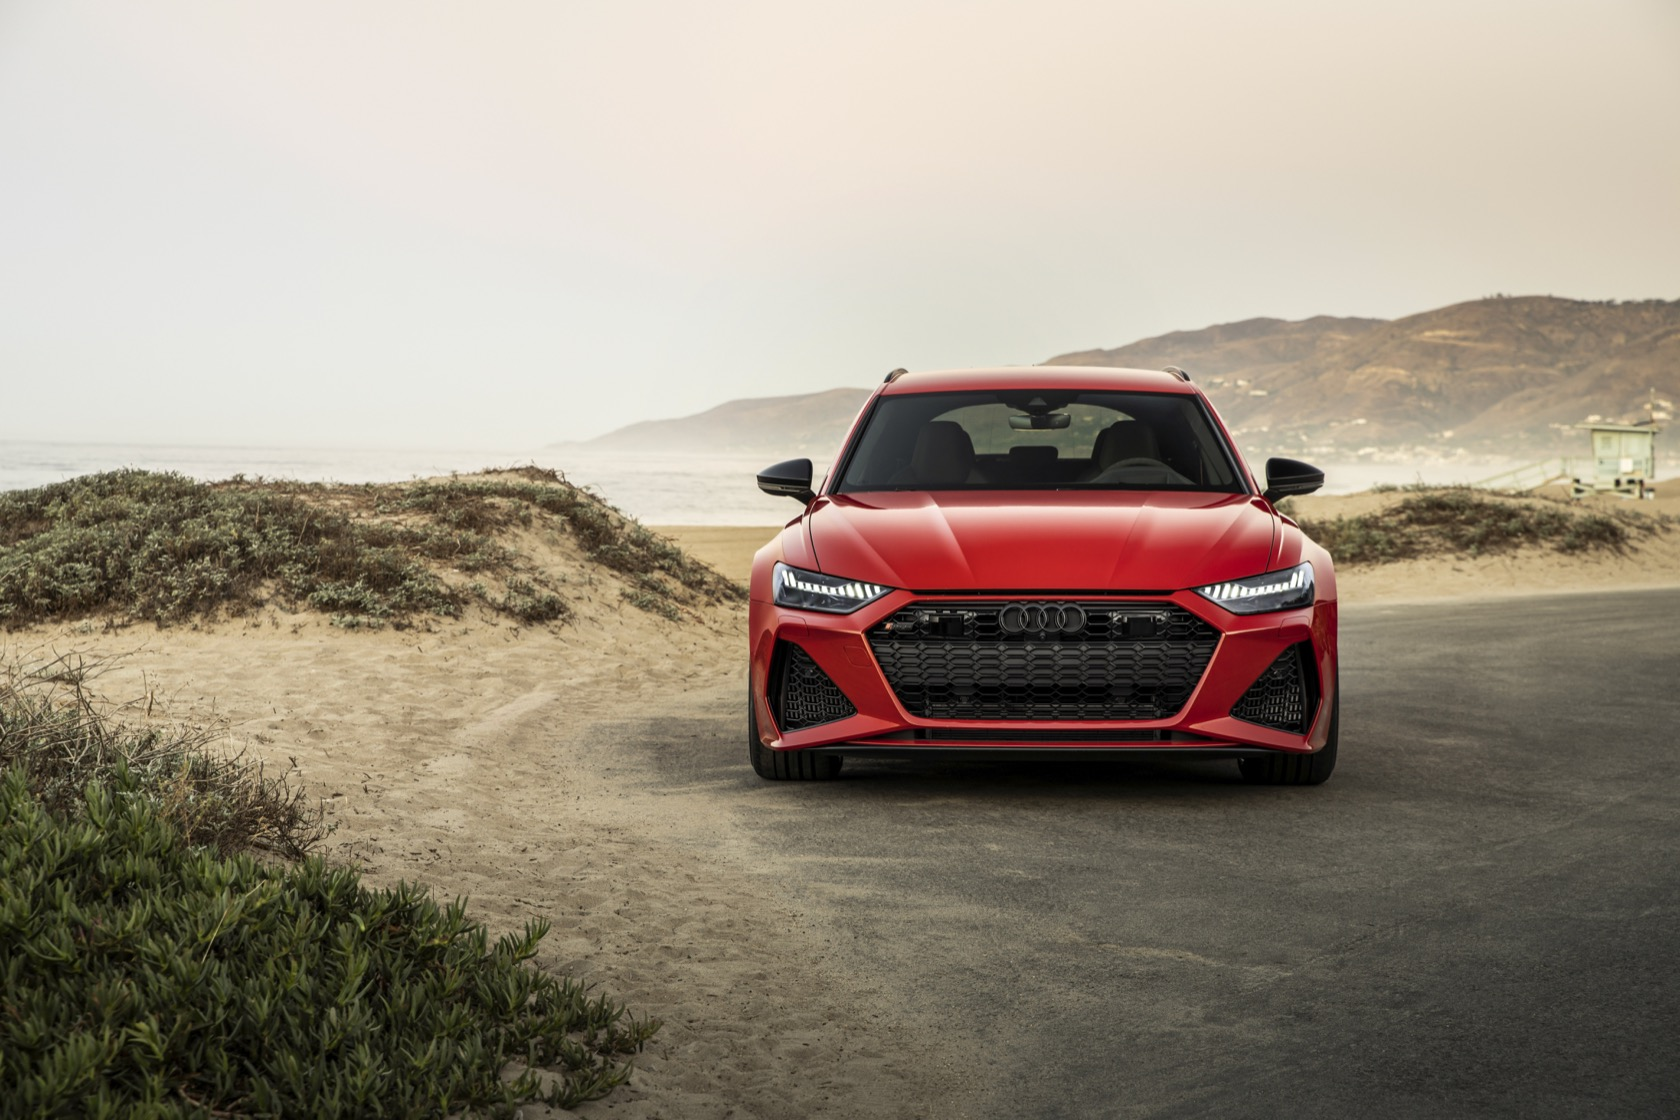 2020 Audi Rs Q8 First Drive Review An Suv That Surprises Slashgear